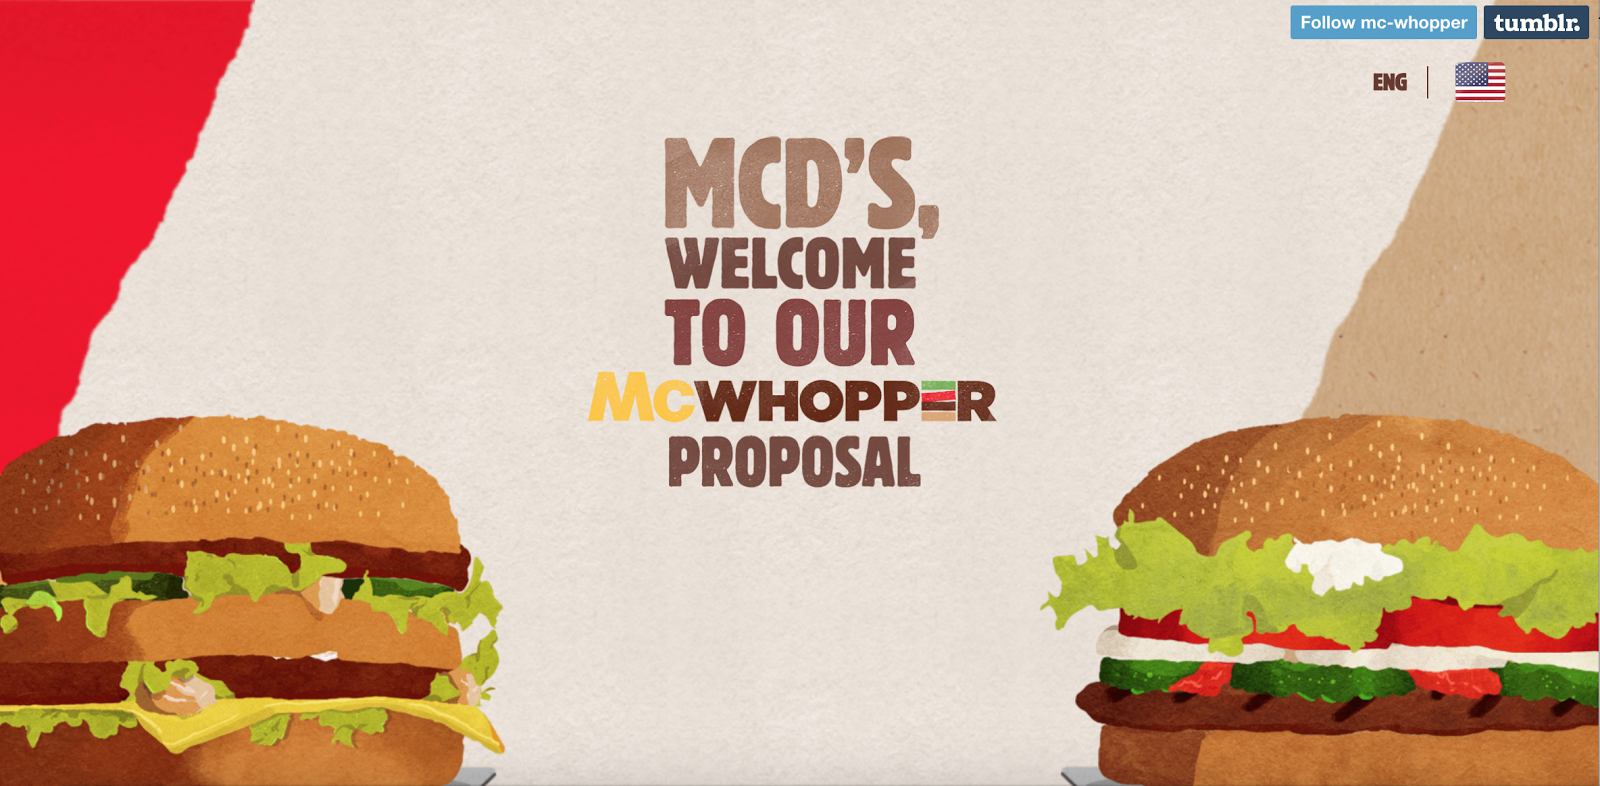 The Ethical Adman: Why McDonald's couldn't accept Burger King's ...